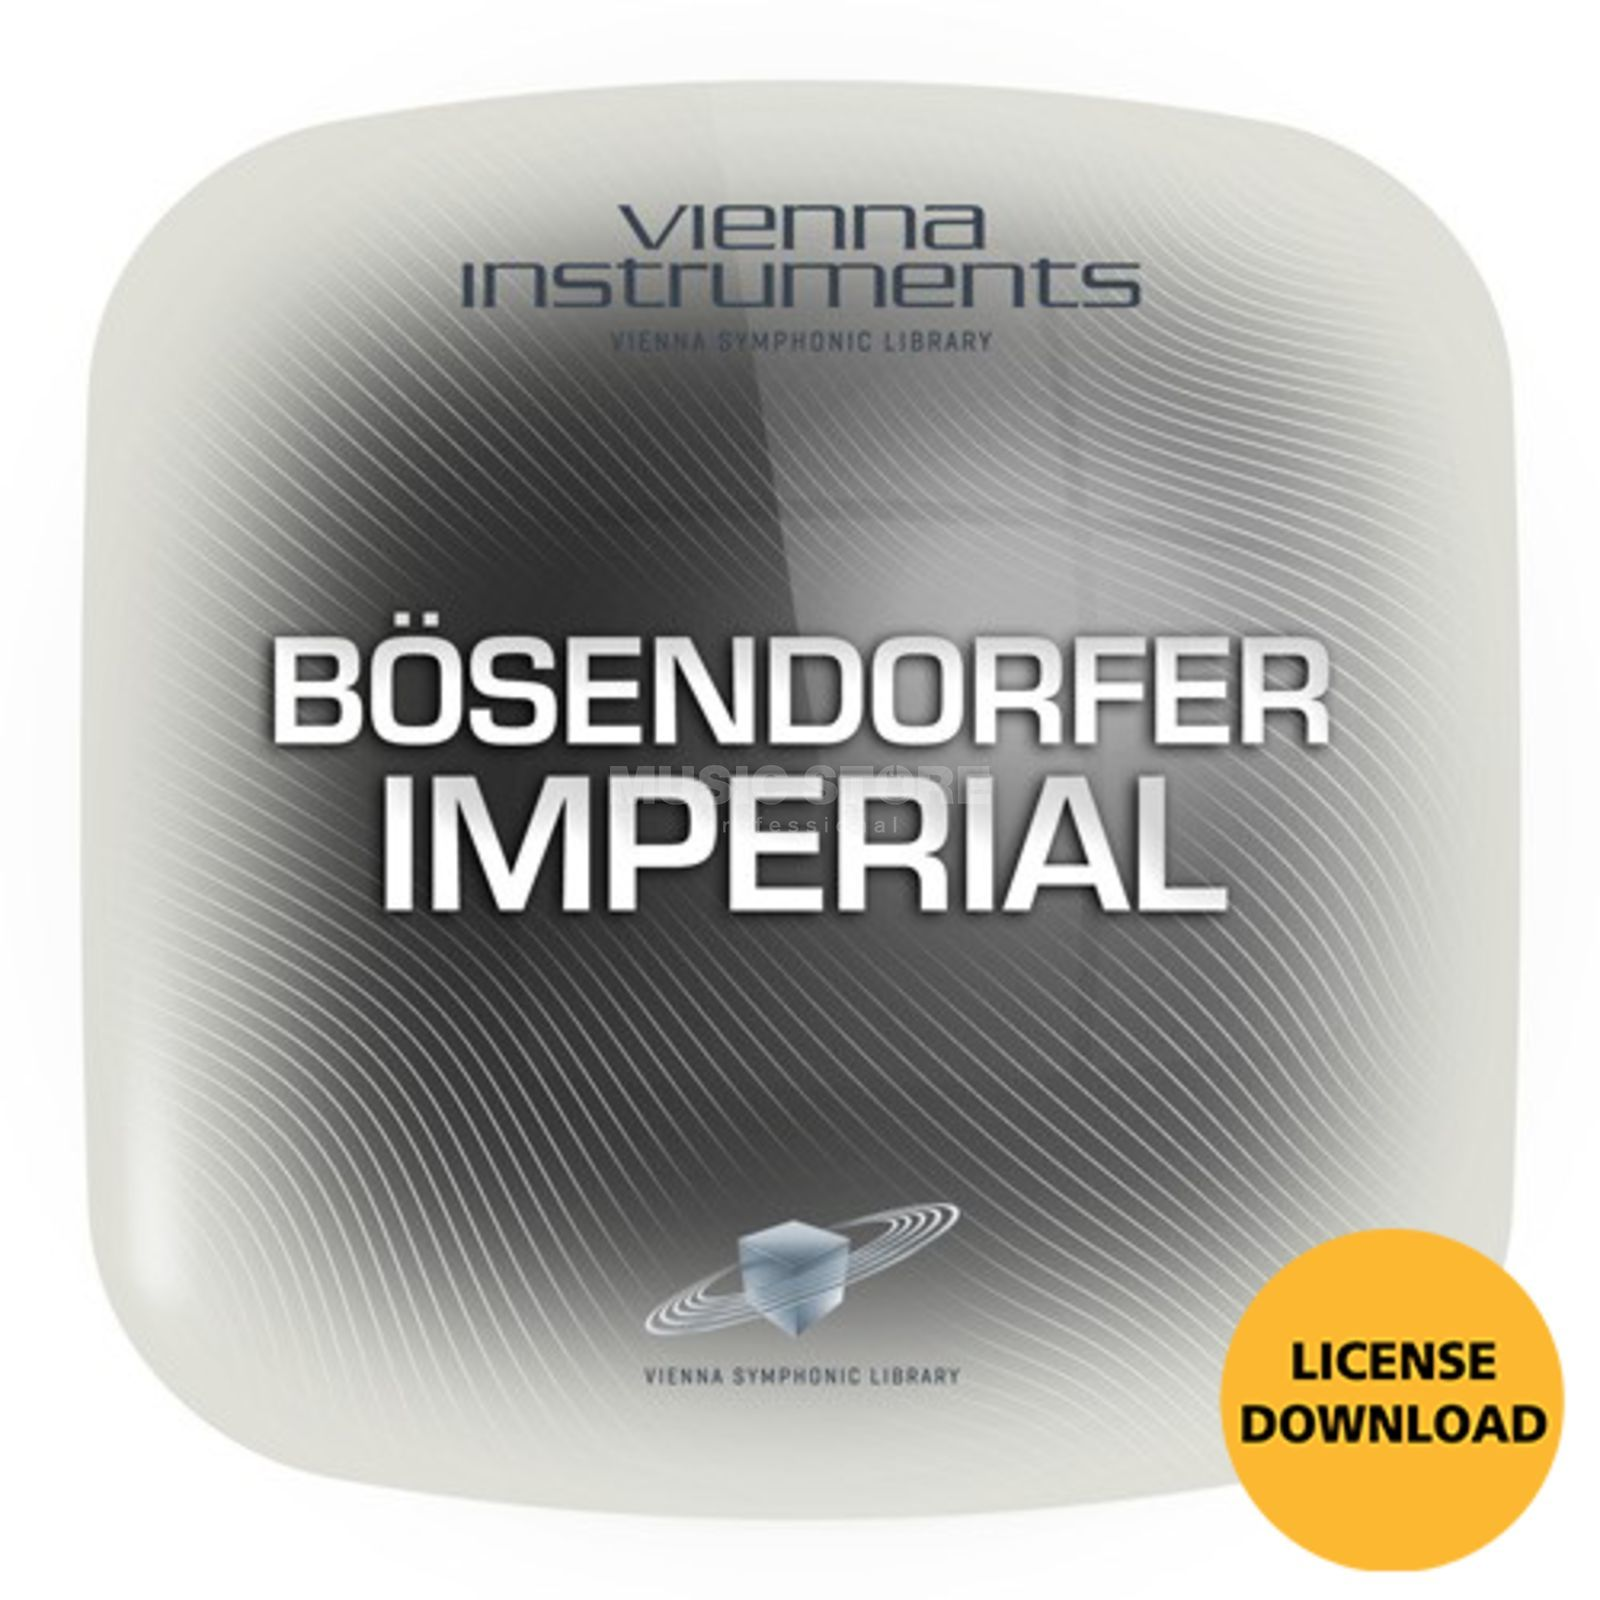 VSL IC Bösenorfer Imperial License Code Product Image